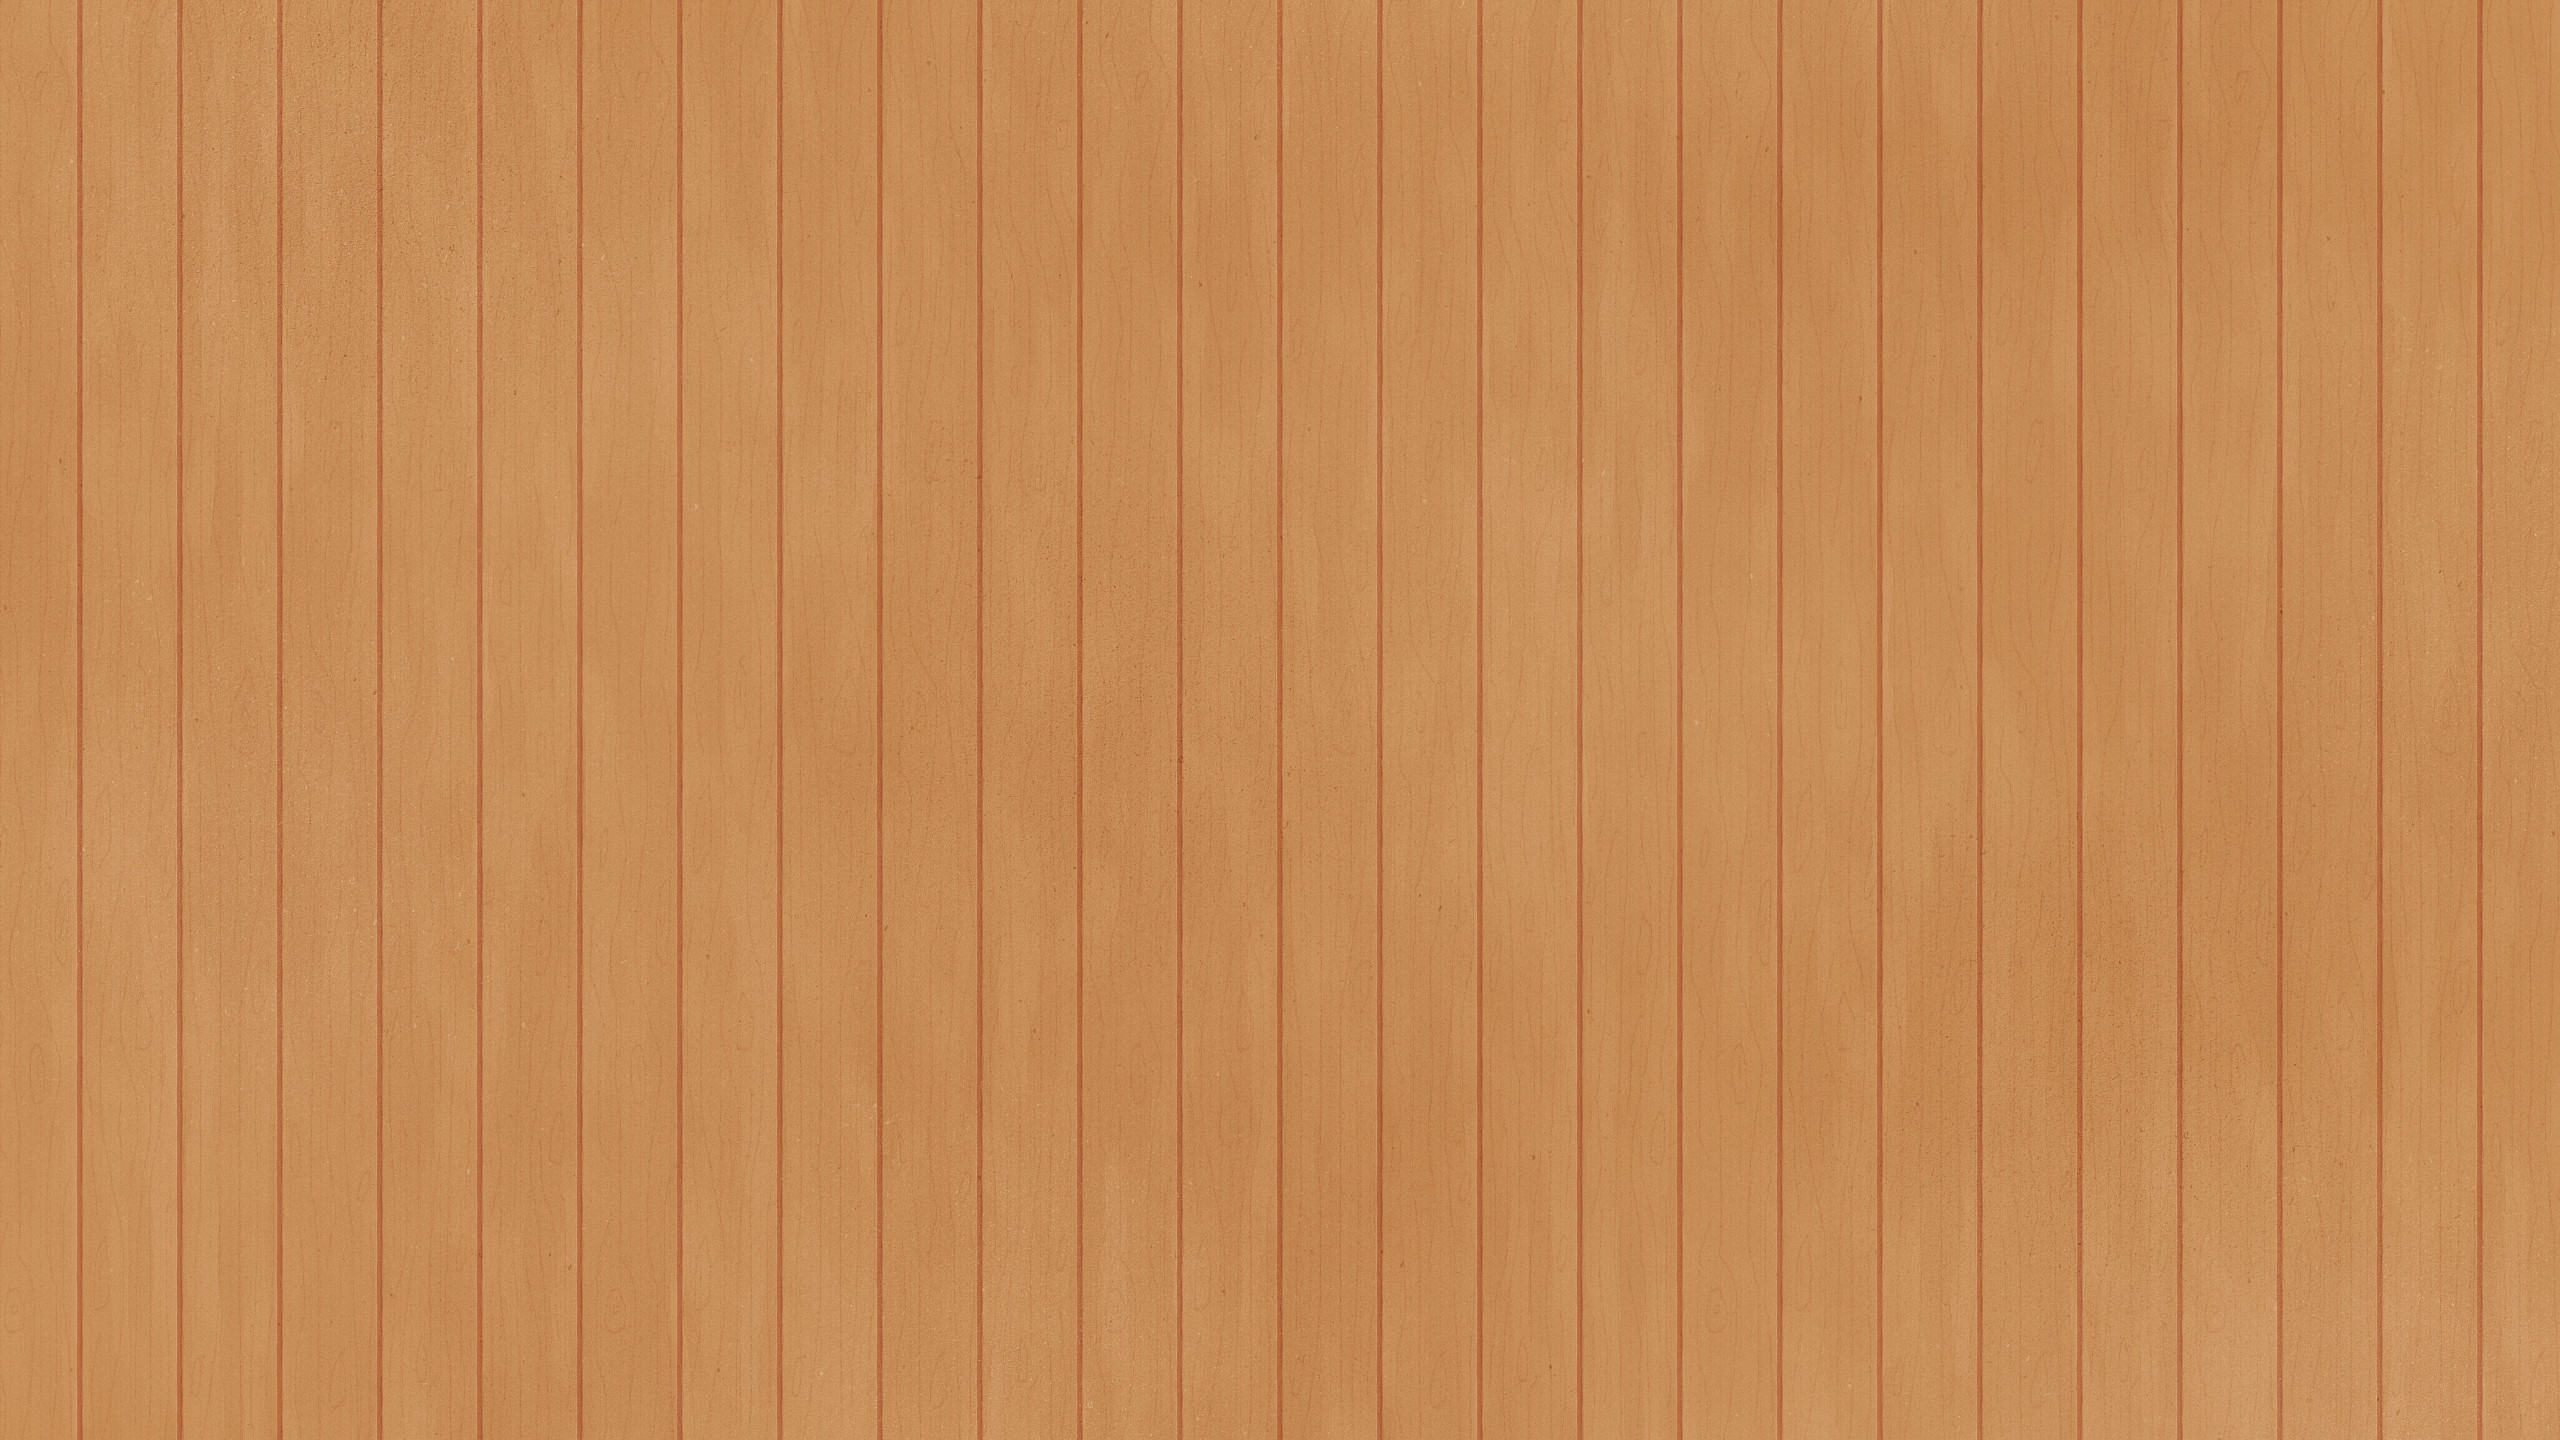 Wooden Desktop Wood Wallpaper Desktop 66 43 Images